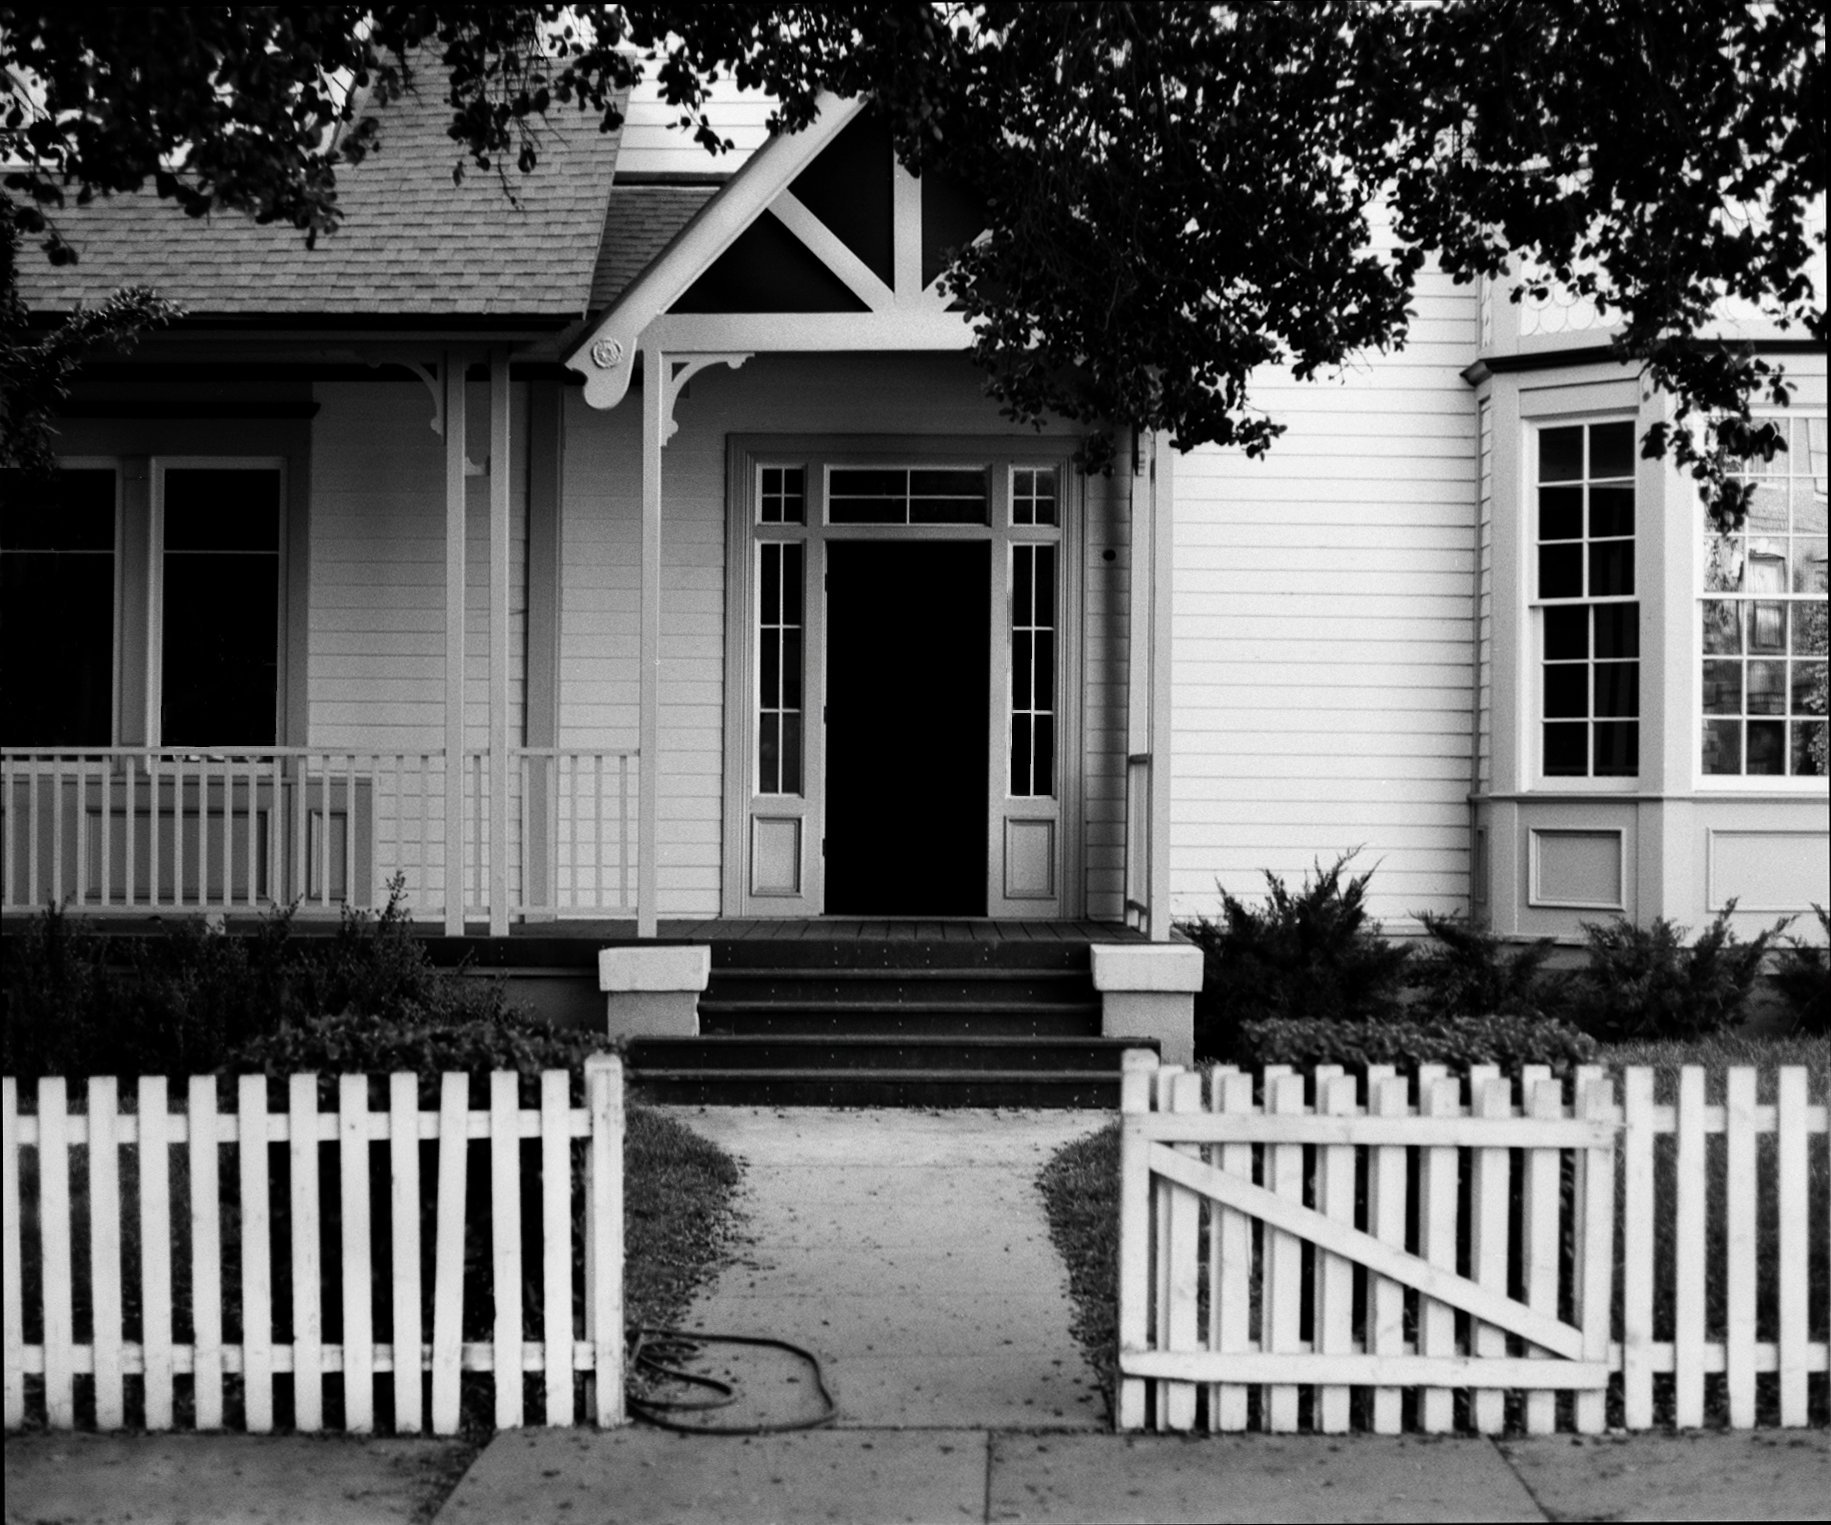 A LOVELY COTTAGE WITH WHITE PICKET FENCE